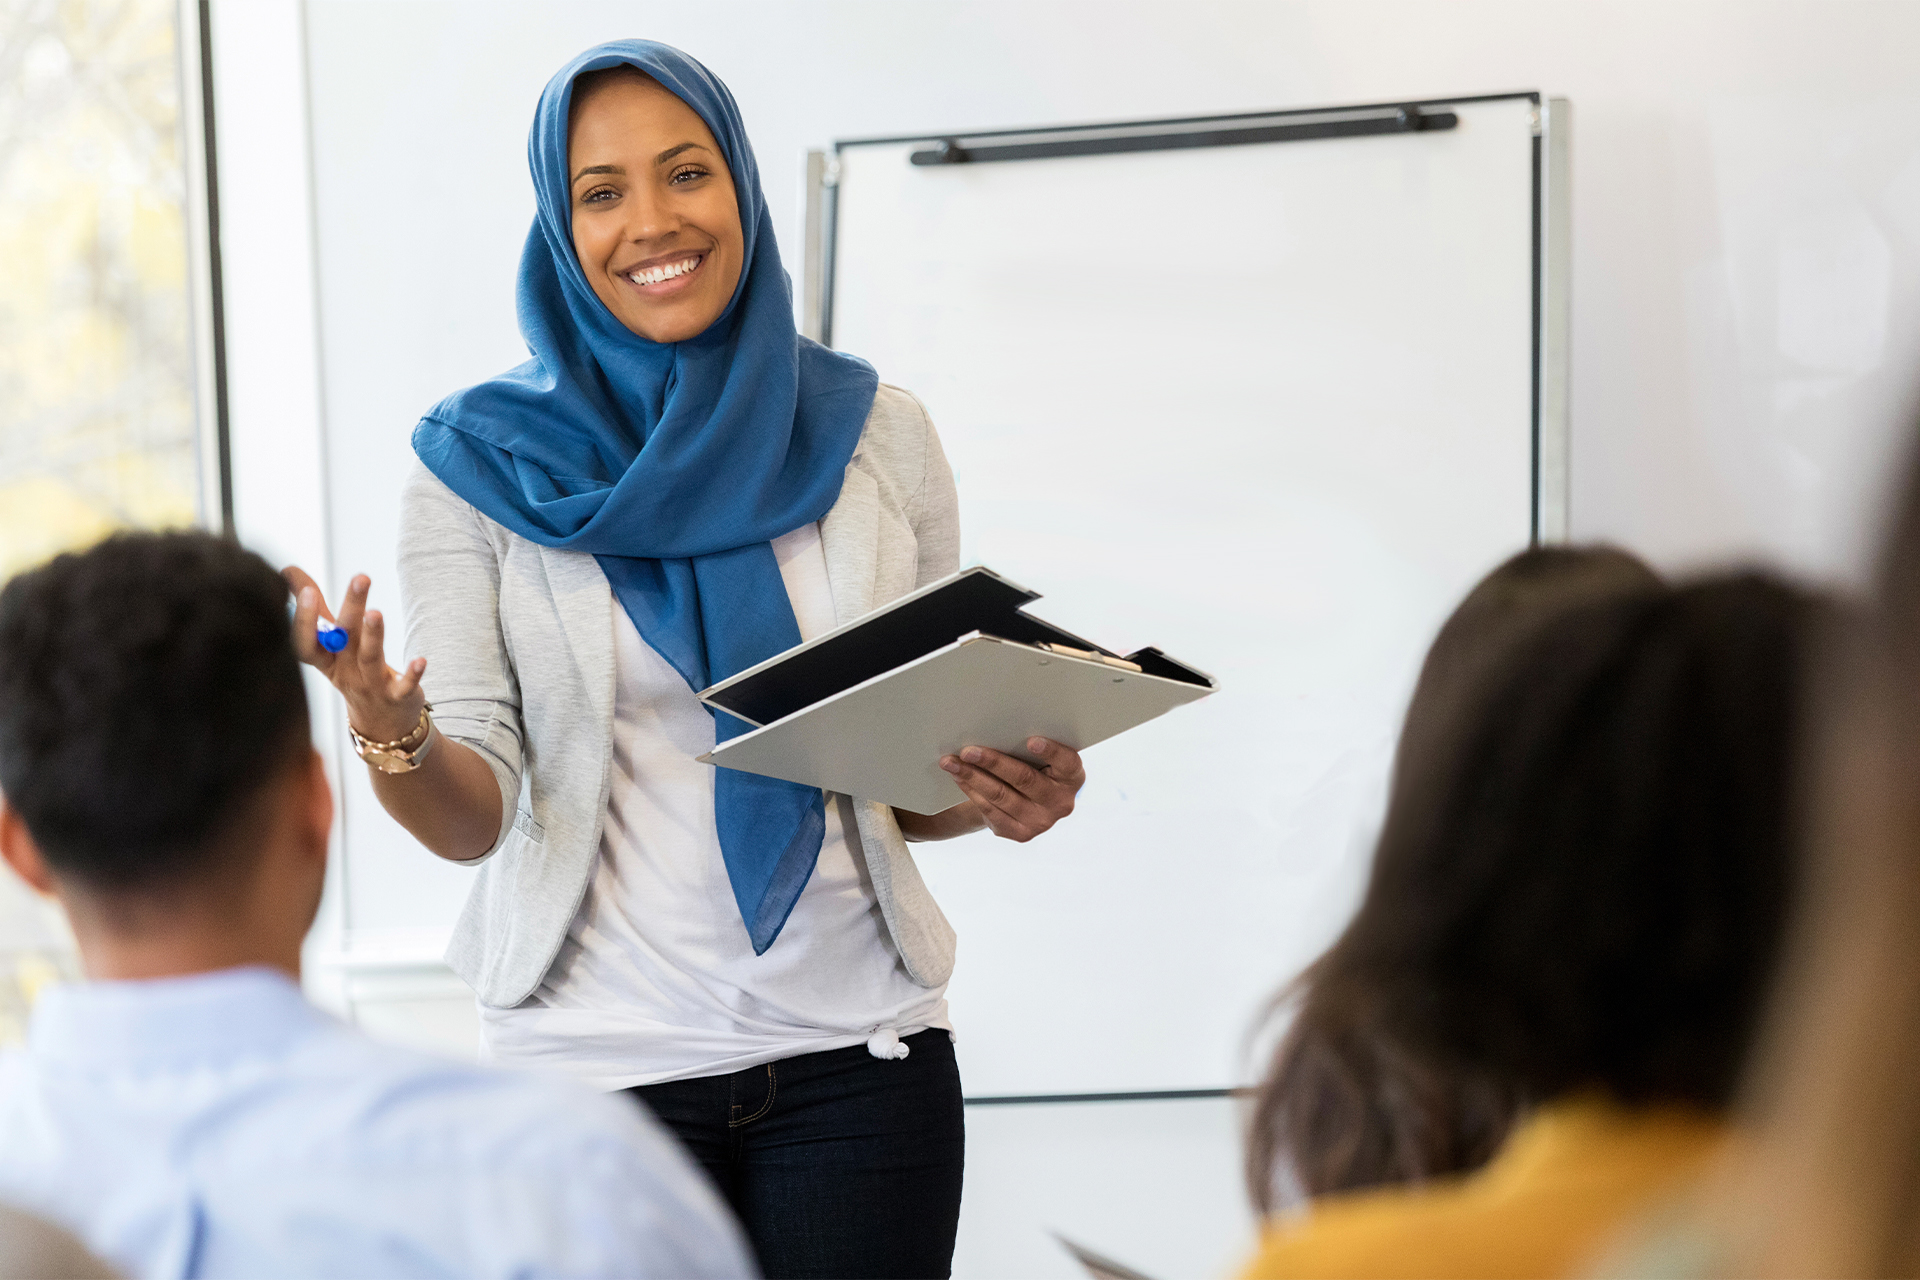 Educator standing in front of sitting group of students